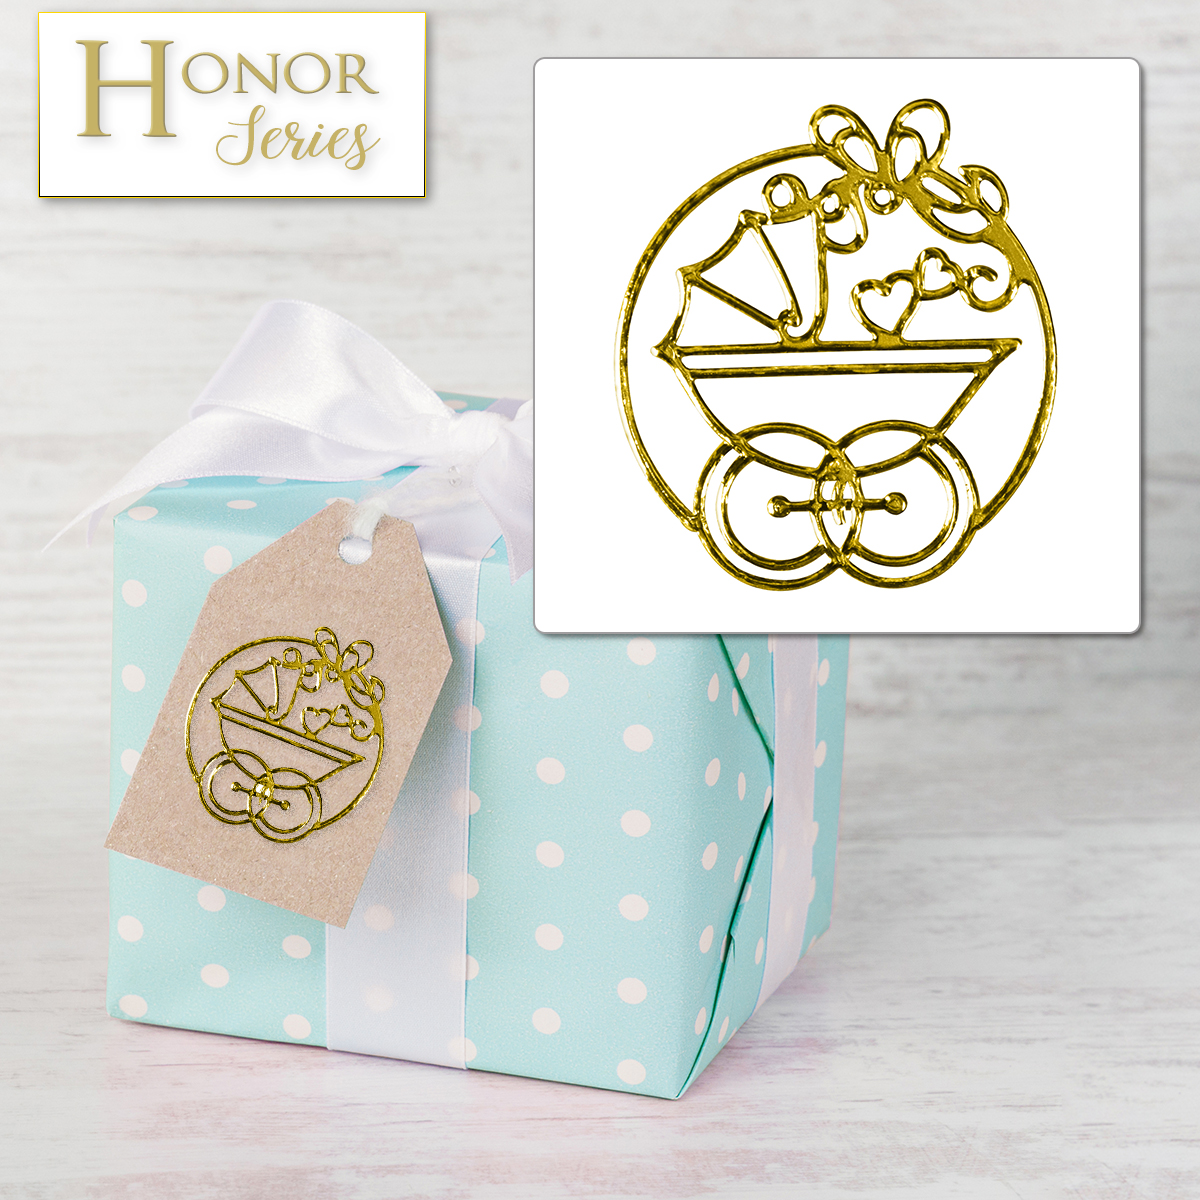 Honor Series - Delicate Touch Gold Baby Seals - 25 Count